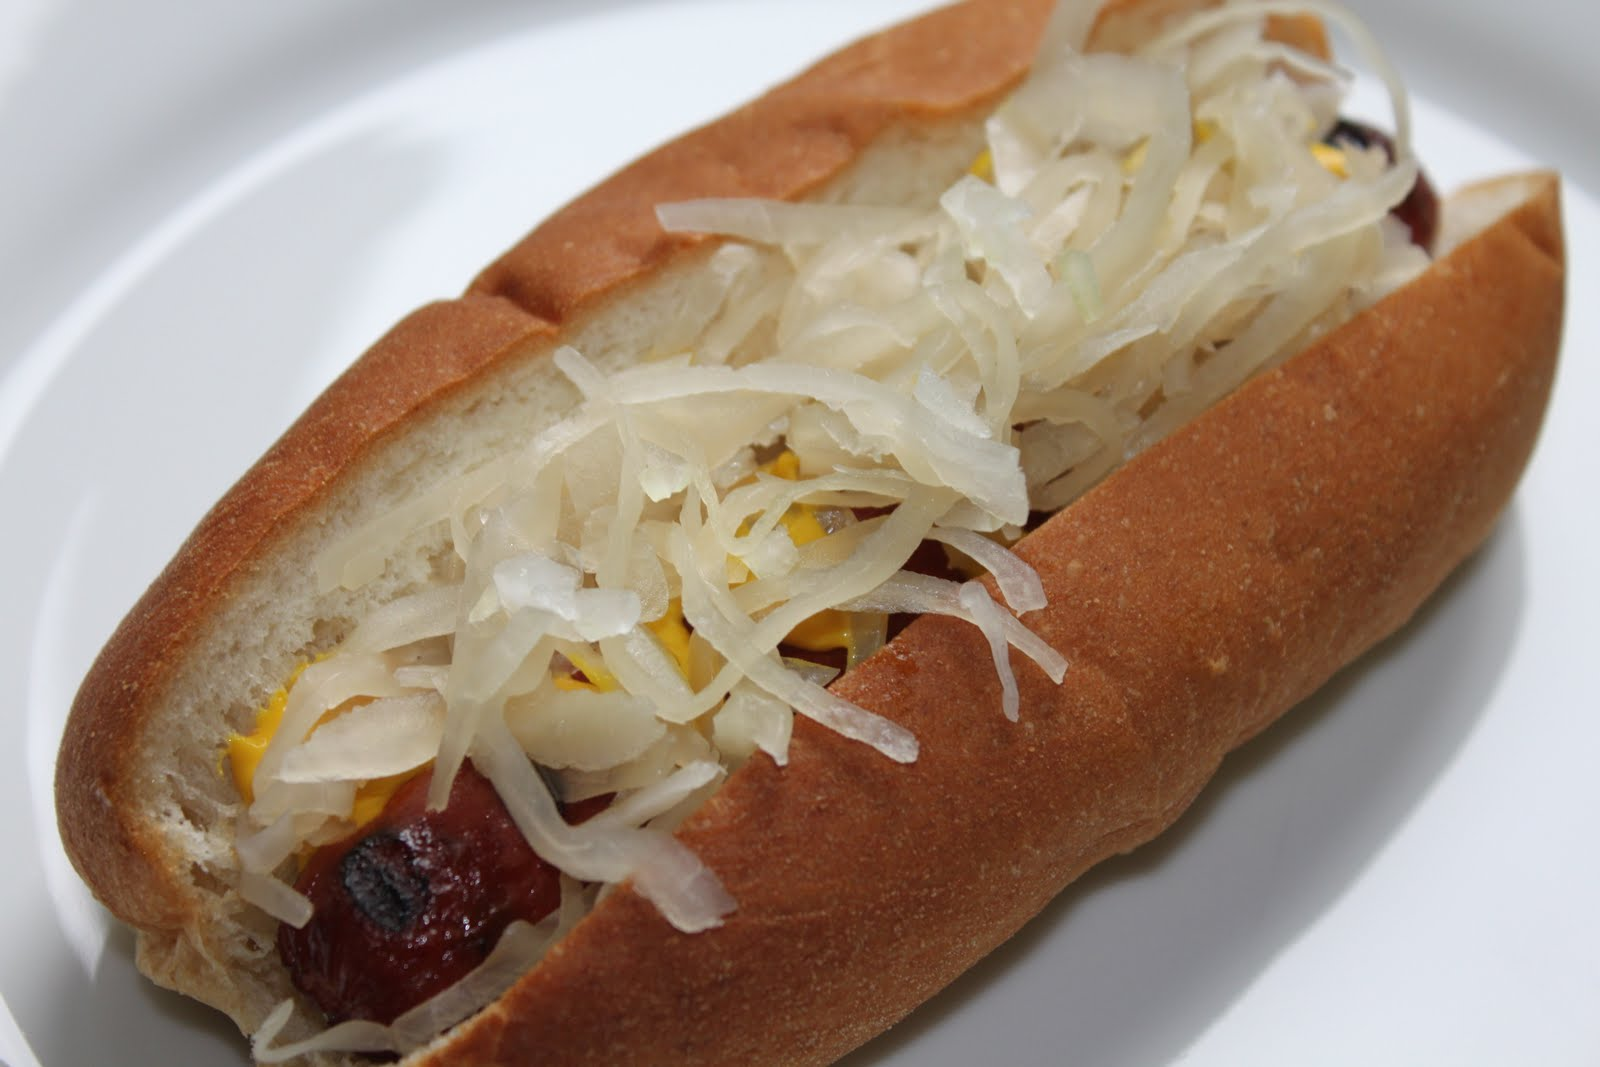 Grilled hot dog with mustard and sauerkraut (2 favorited this hot dog ...